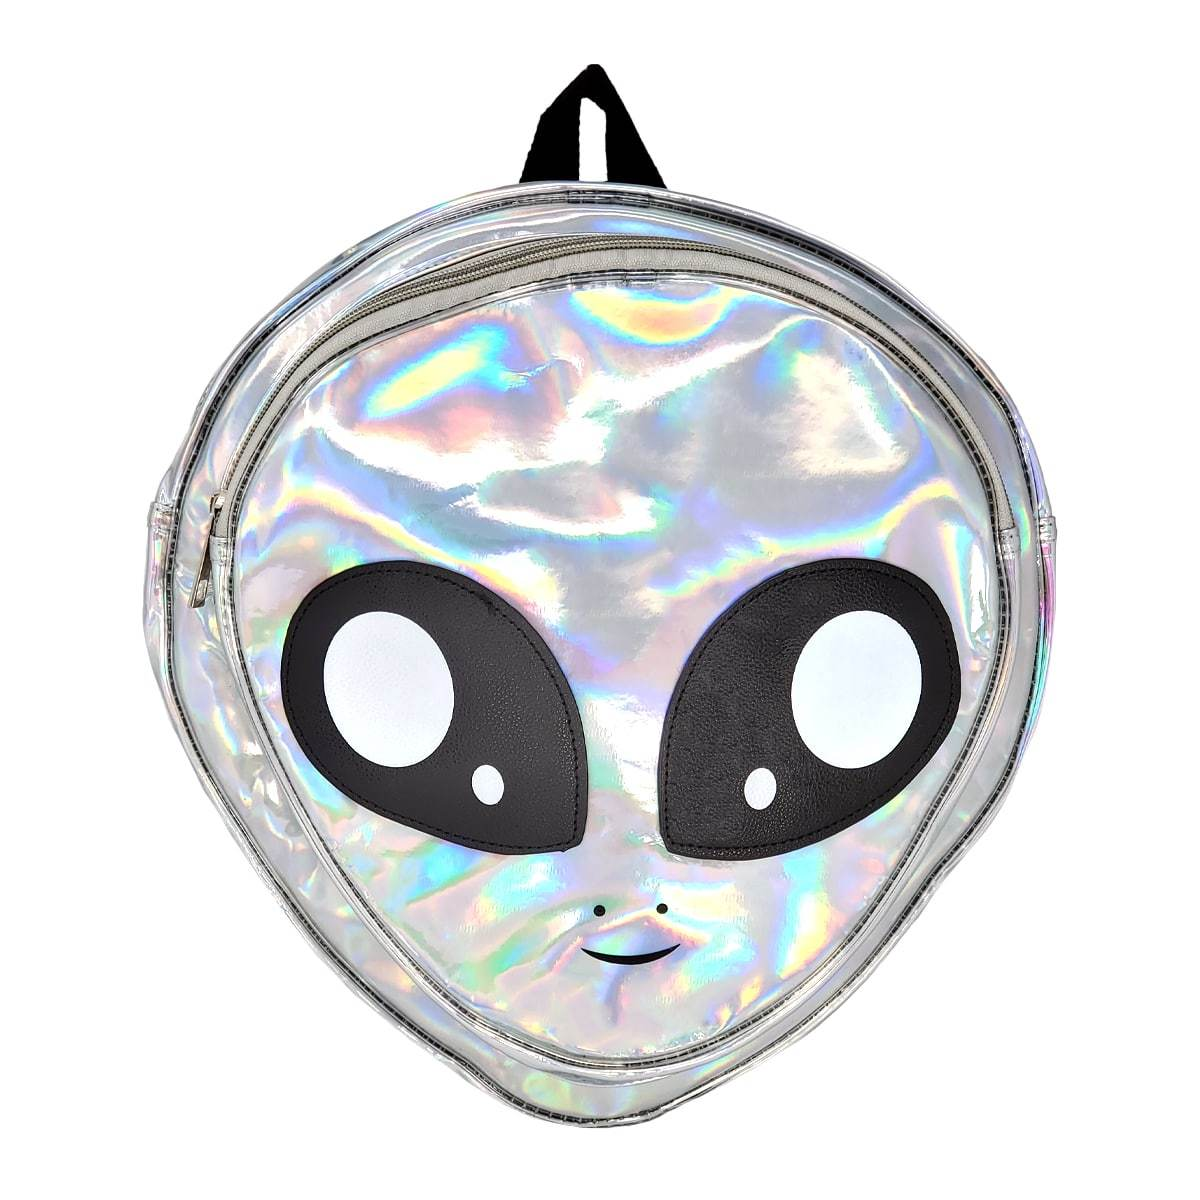 Alien Head Backpack Holographic Vinyl Print Pakapalooza The alien head is a weapon found exclusively in dead rising 2: alien head backpack silver